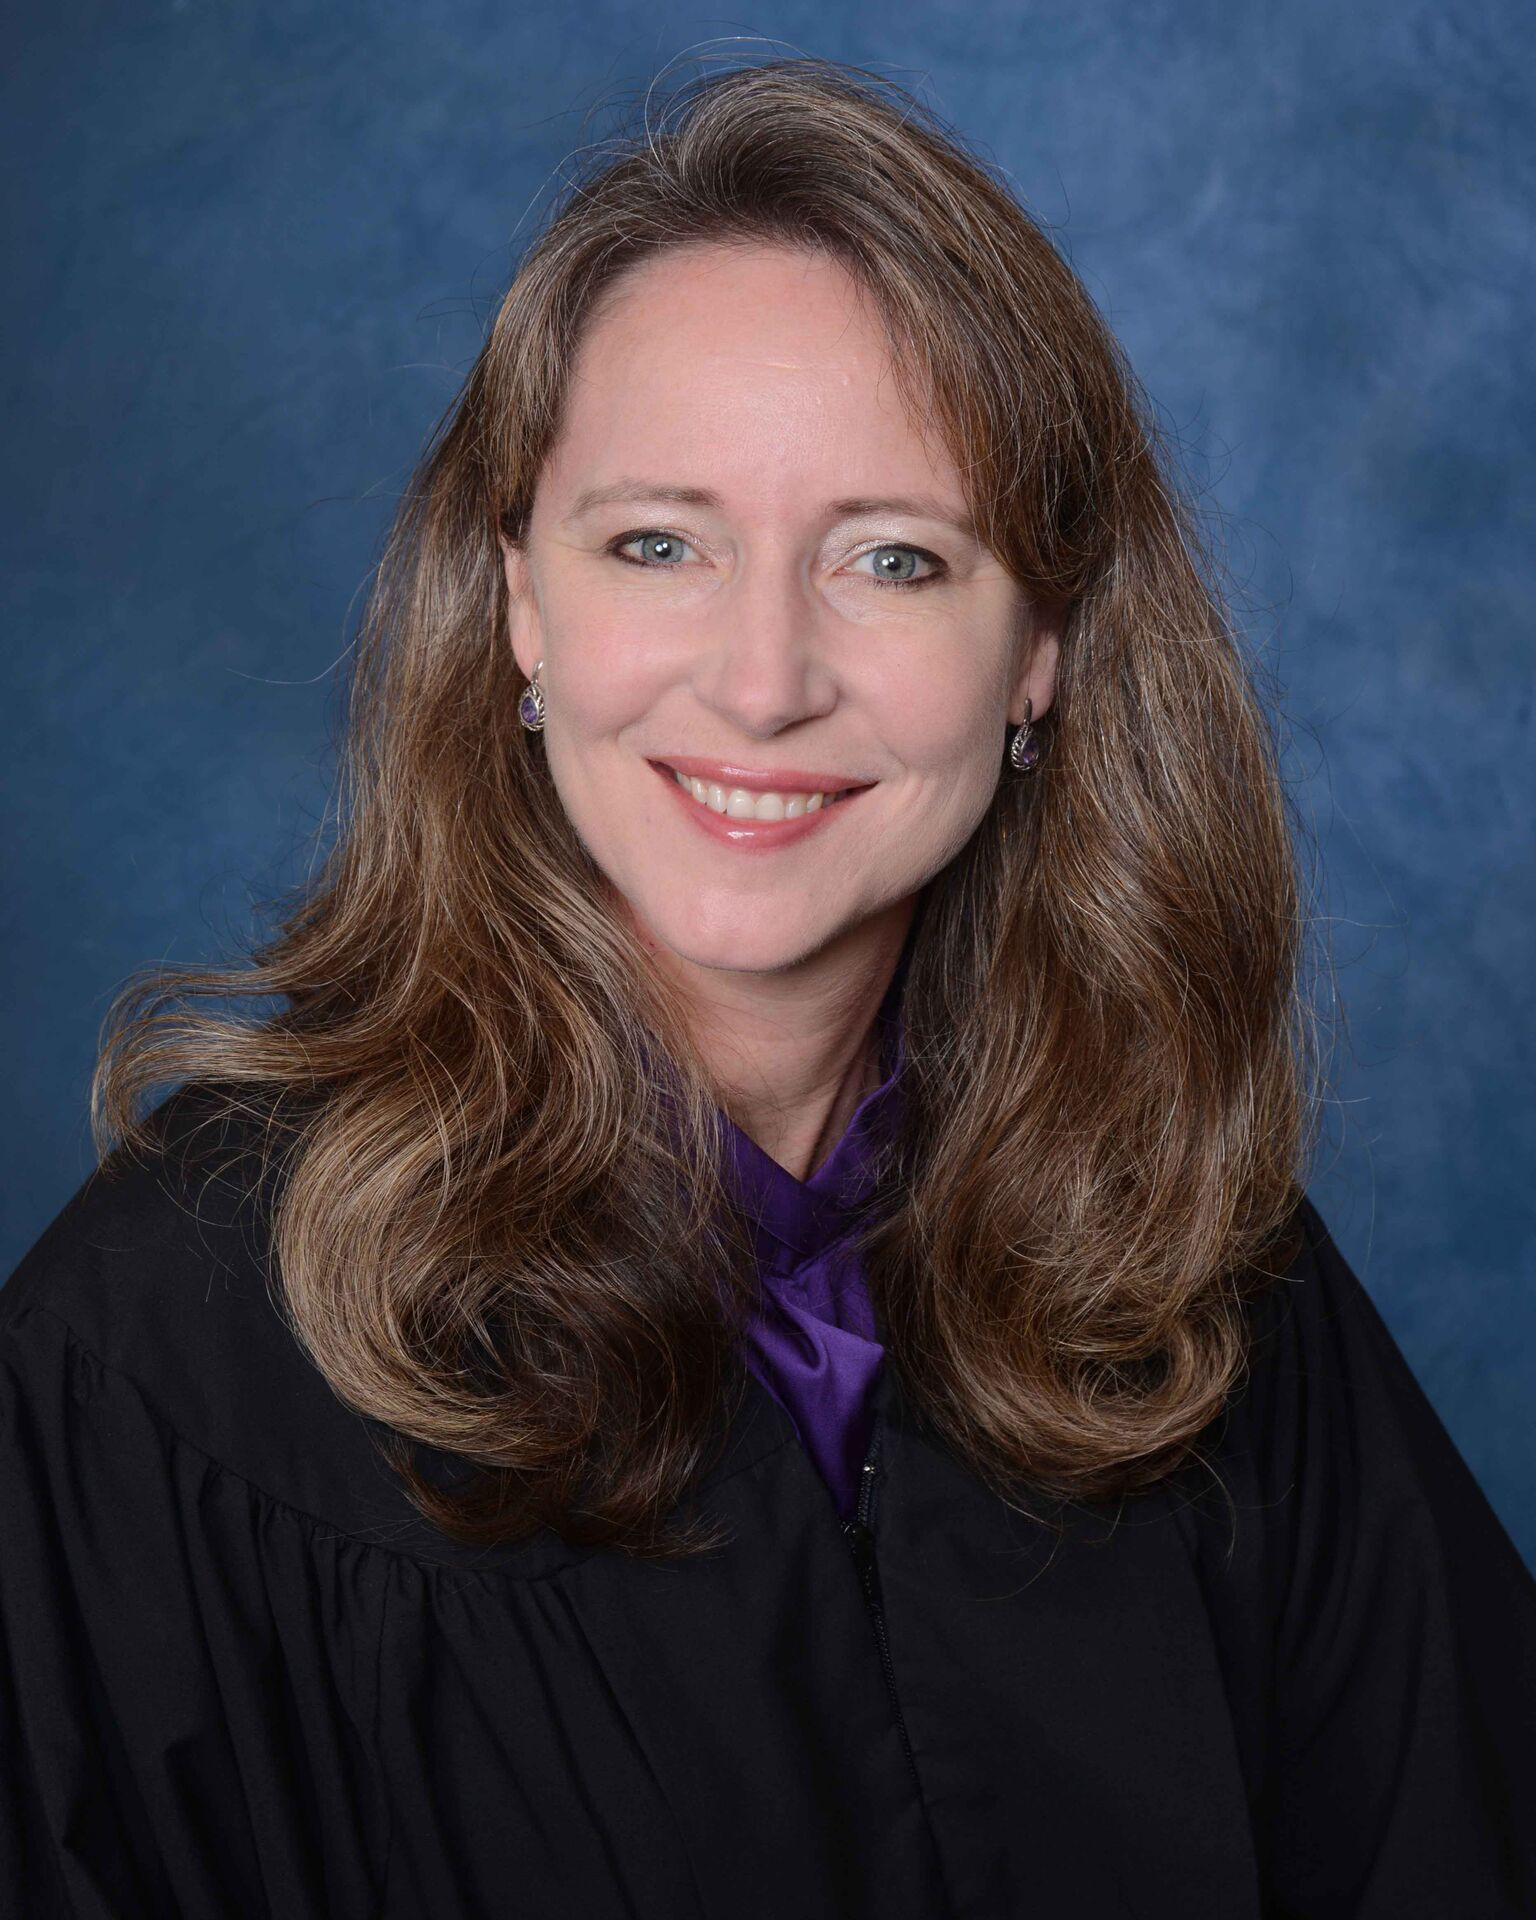 Picture of Brevard County Judge: Michelle Naberhaus. Opens in new window.